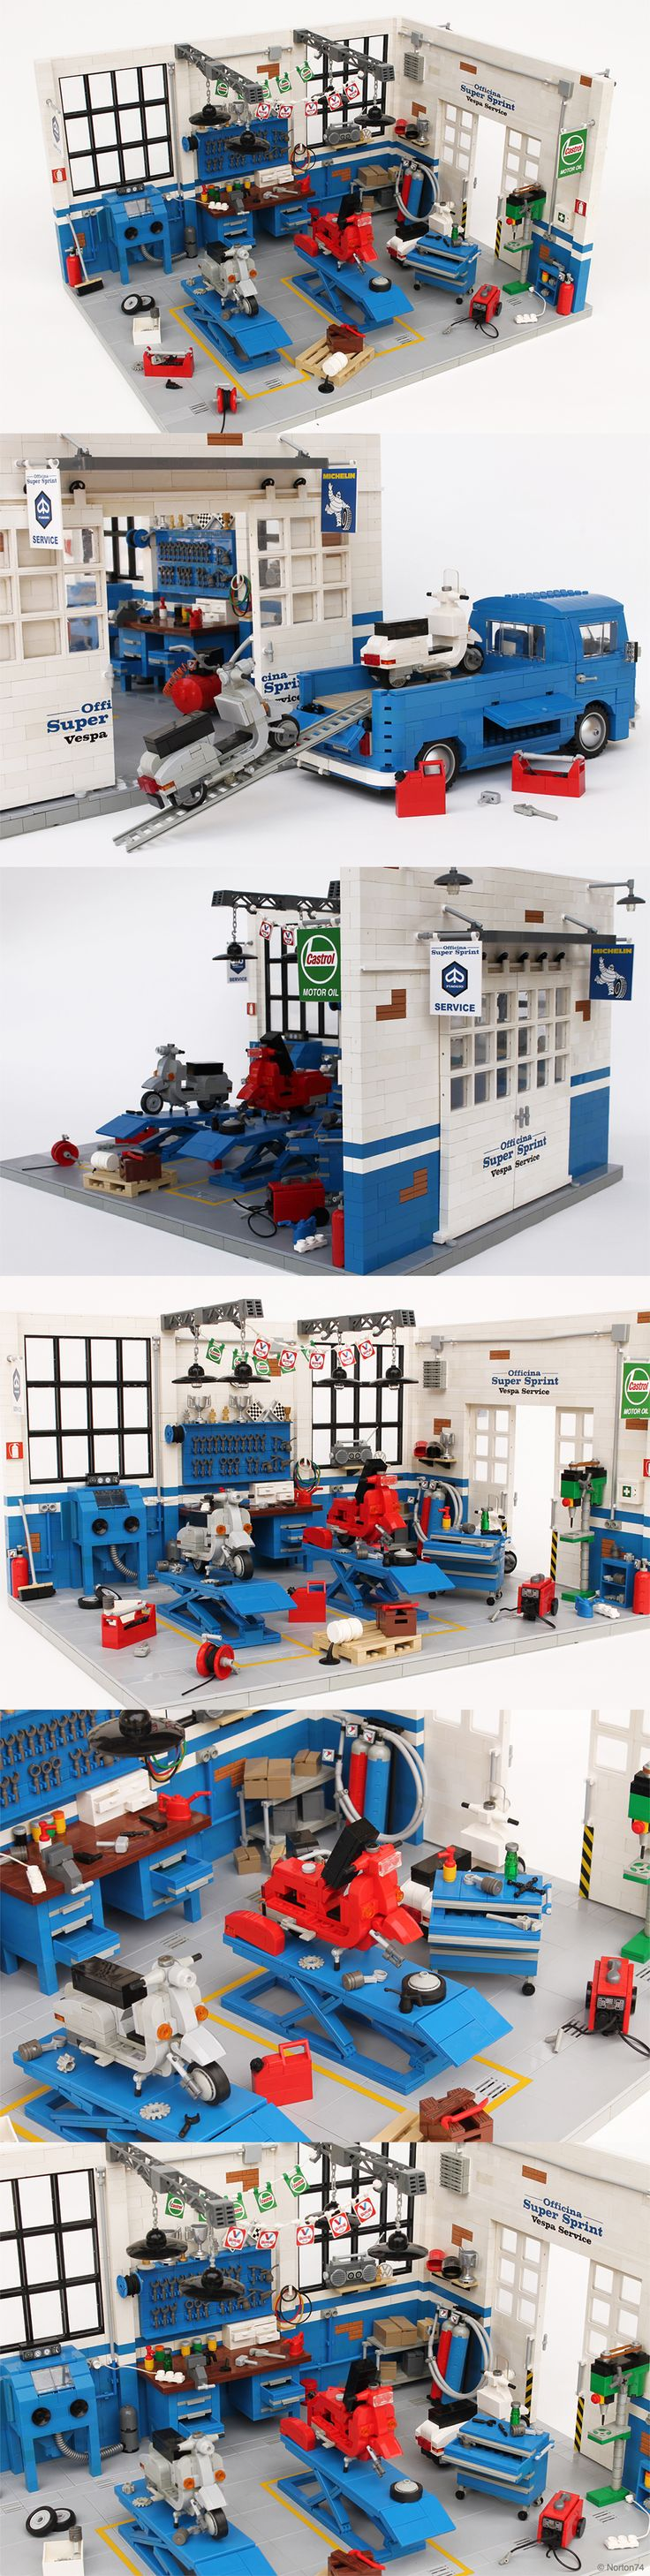 'Officina Super Sprint' classic Vespa LEGO workshop model by Andrea Lattanzio